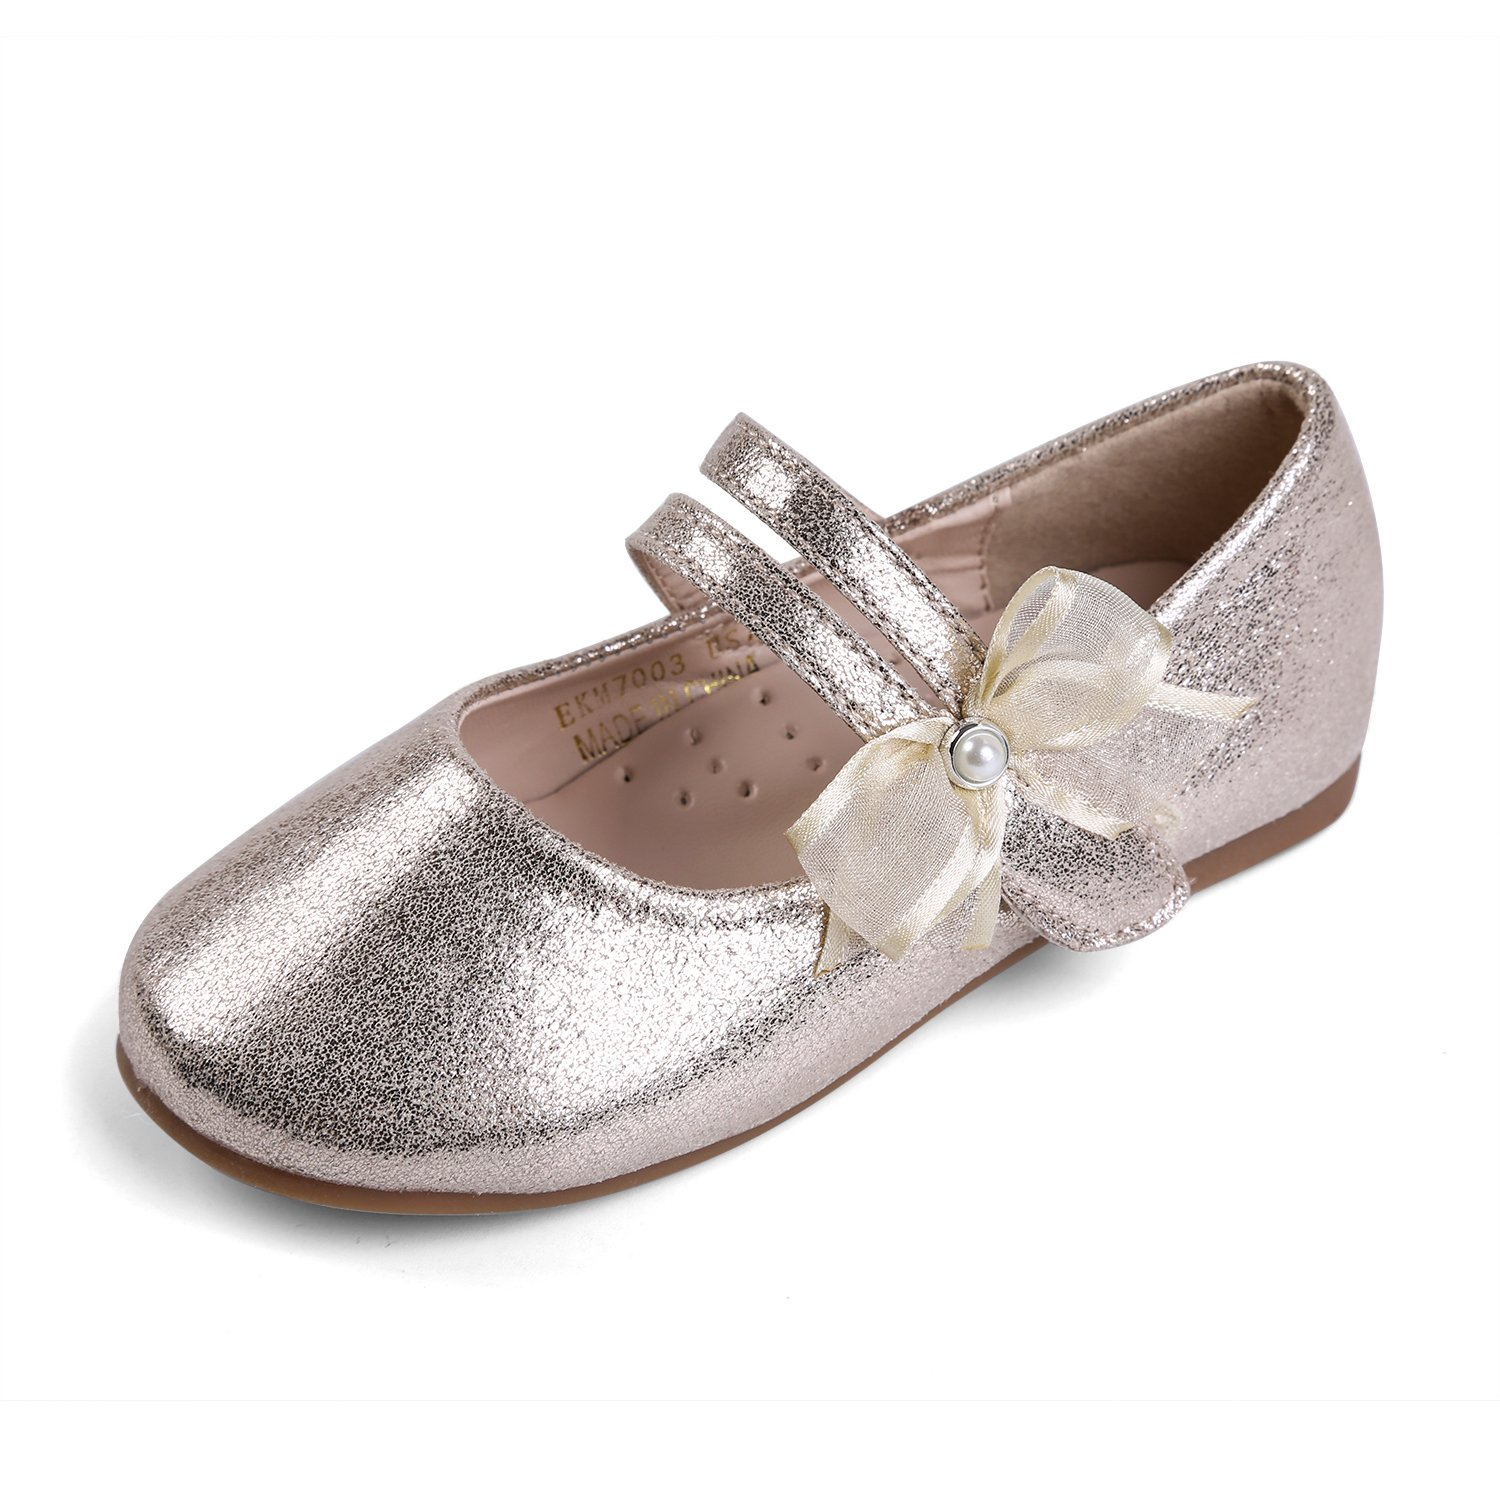 EIGHT KM EKM7003 Toddler & Girl's Ballet Flats Mary Janes Dress Shoes Gold-8